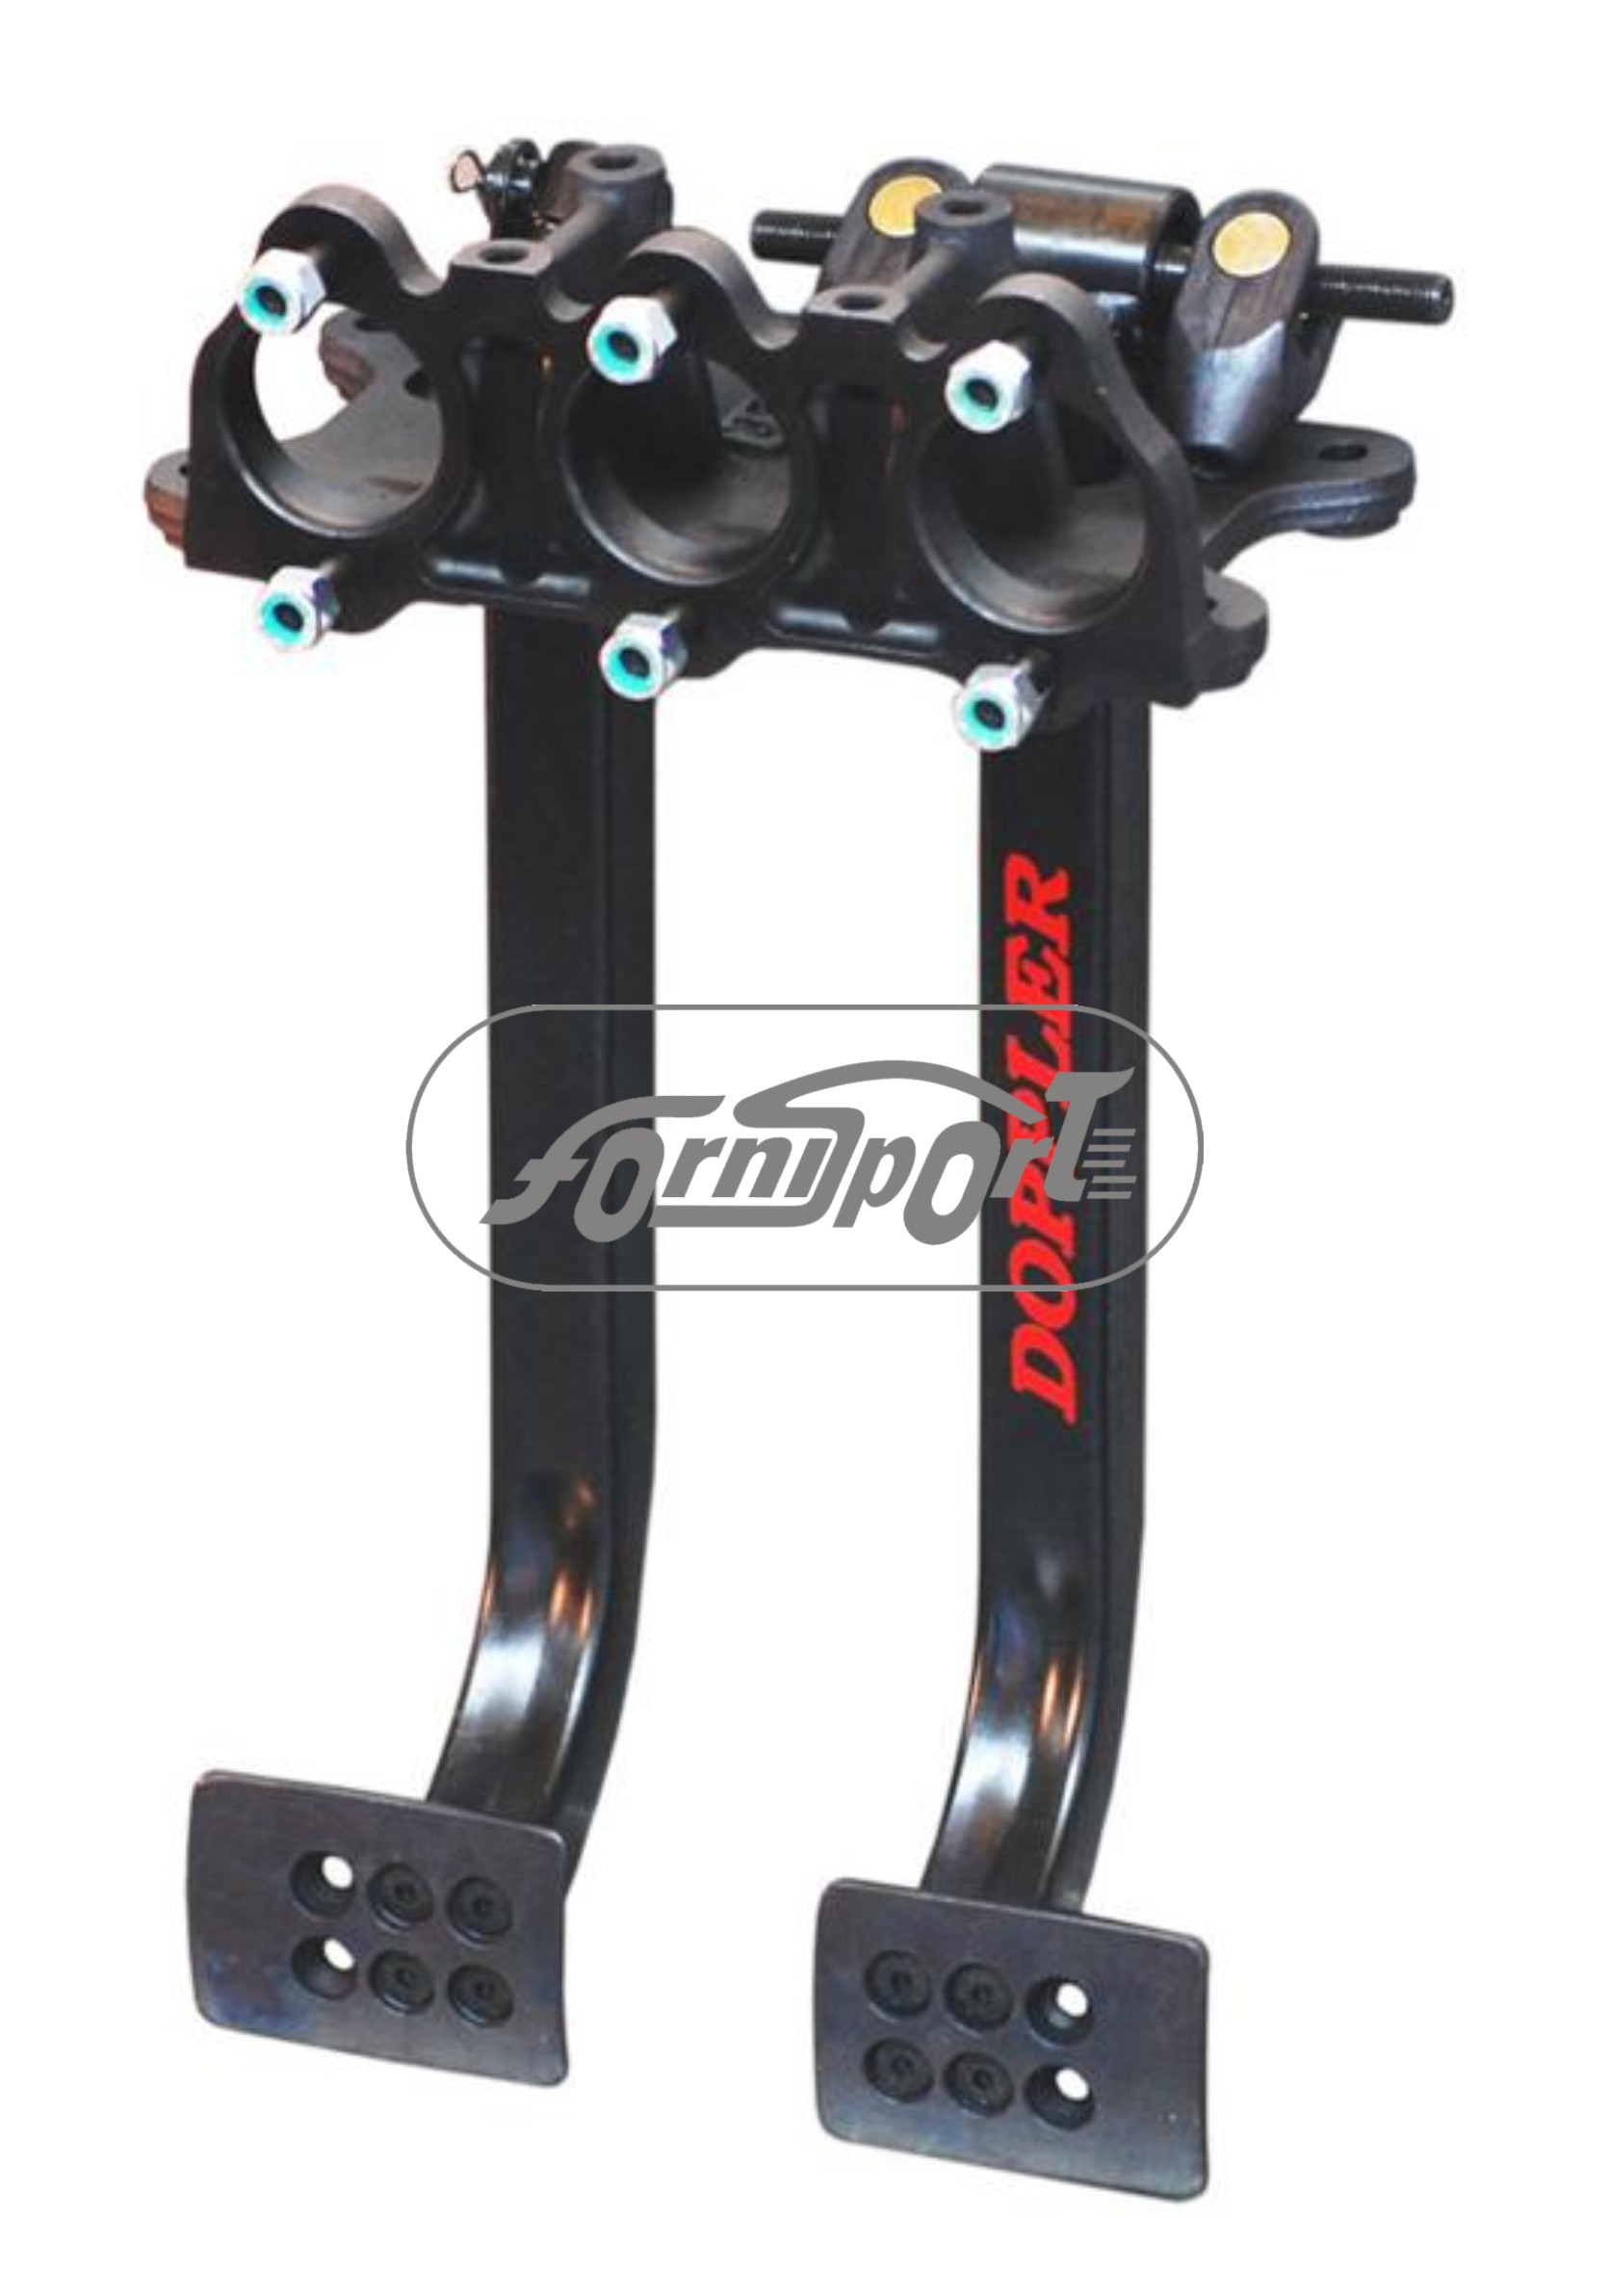 Pedalera colgante  Doppler c/eje 7/16 Regulador no incorporado 9220 BLACK